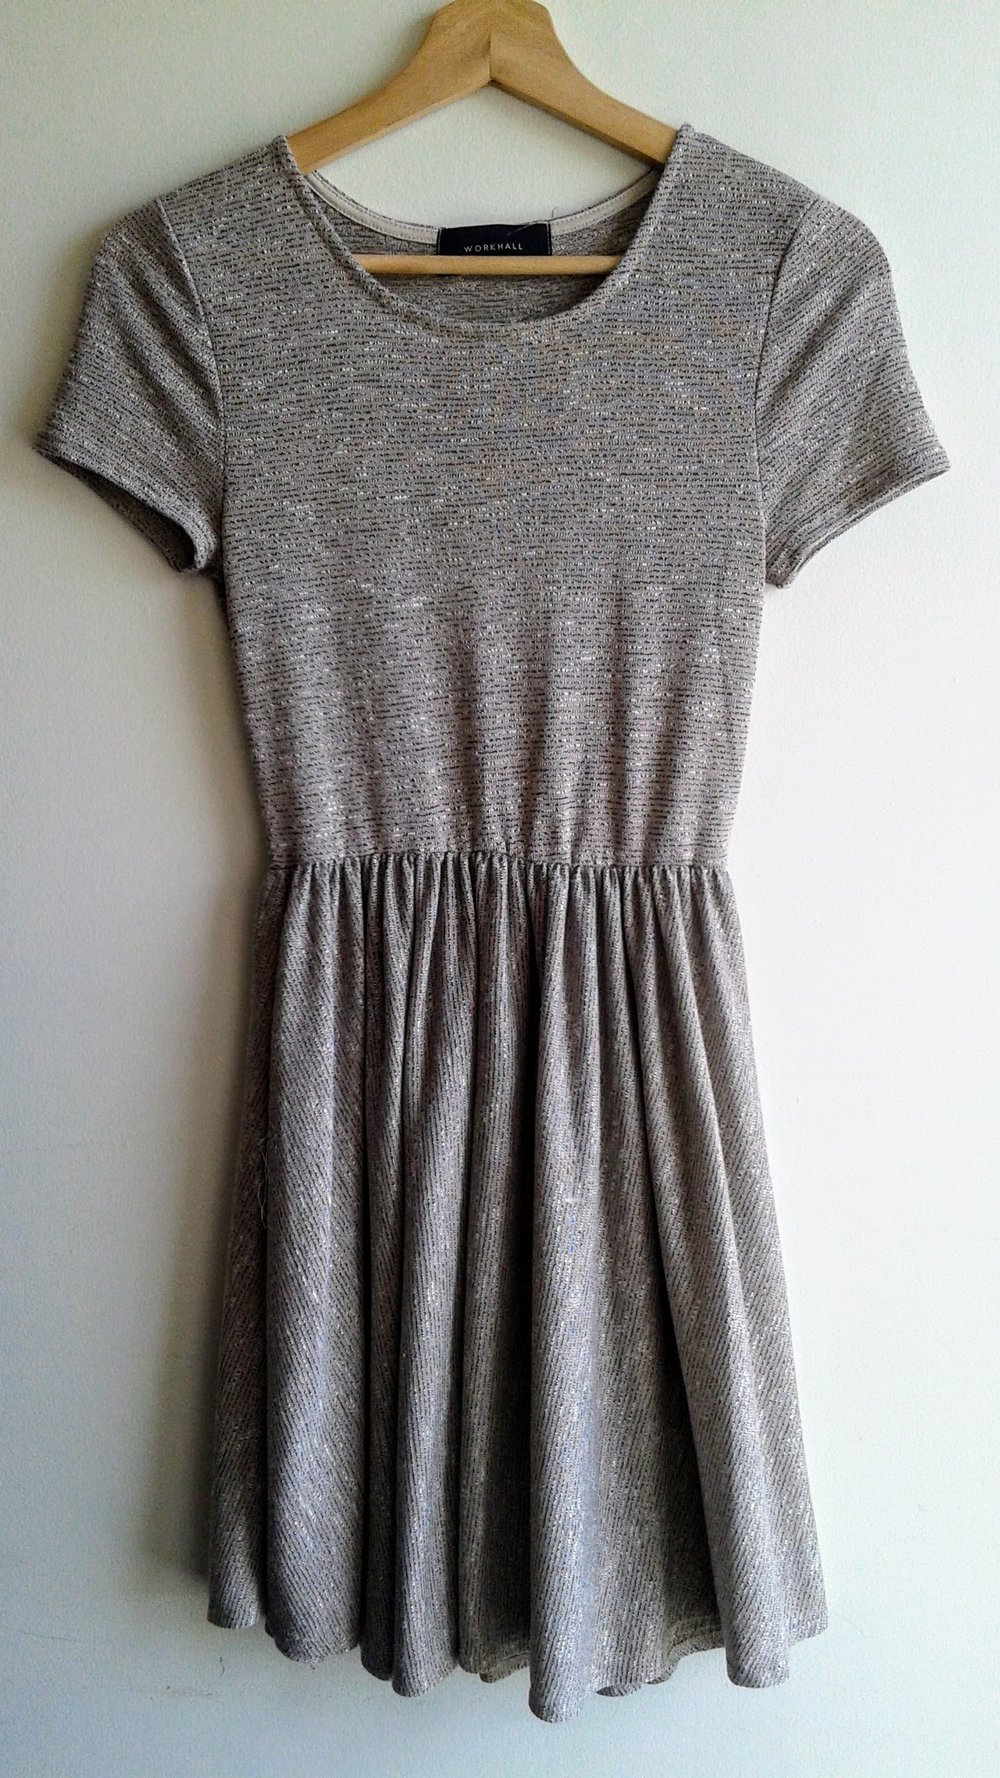 Workhall dress; Size S, $30